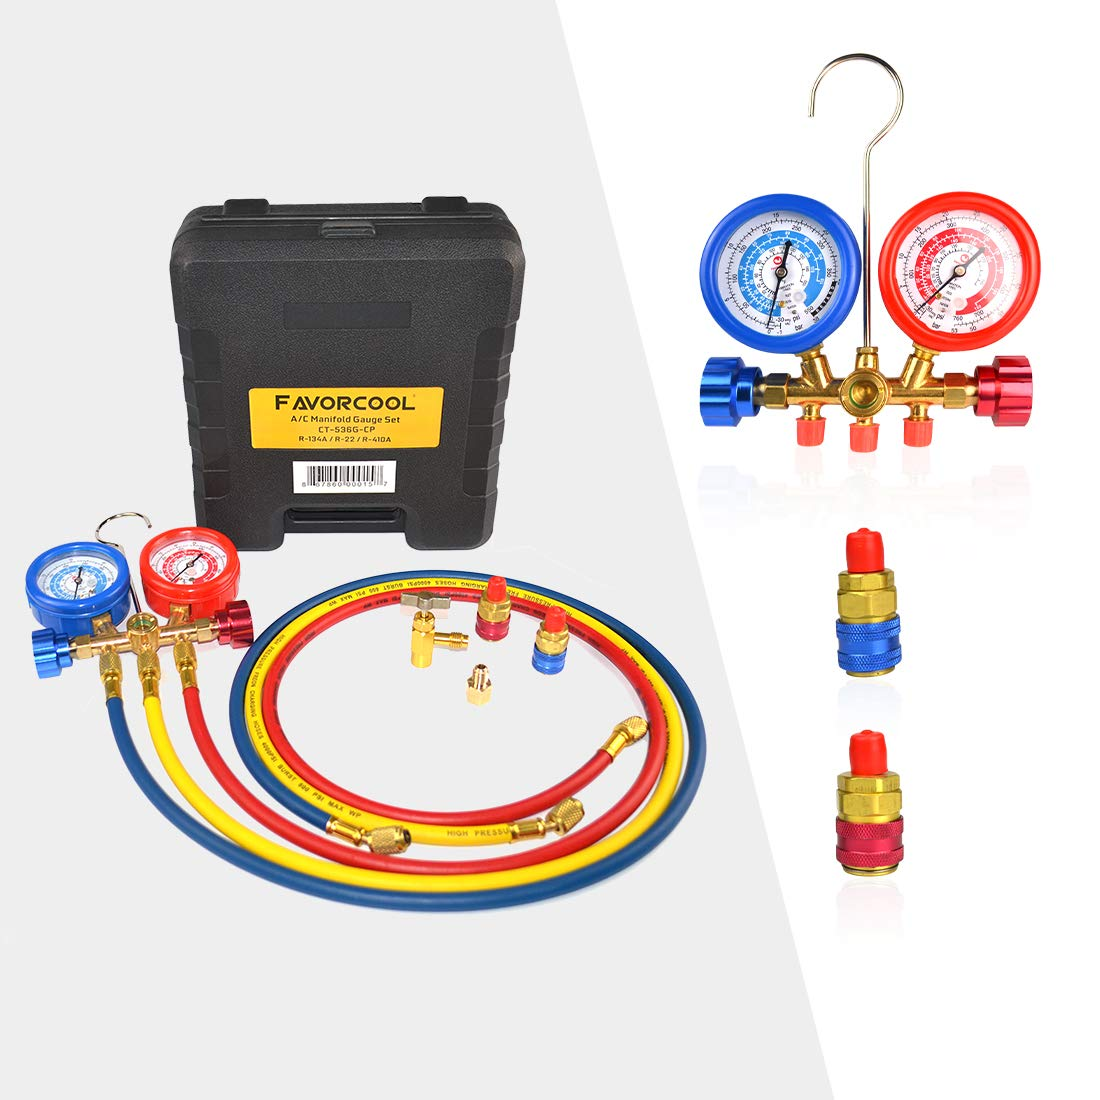 FAVORCOOL CT-536G 3-Way AC Diagnostic Manifold Gauge Set with Case for Freon Charging, fits R410A, R134A, R22 Refrigerants, Brass Body, Sight Glass & 1/2'' Acme Fittings, R134a Snap Couplers & Adapter